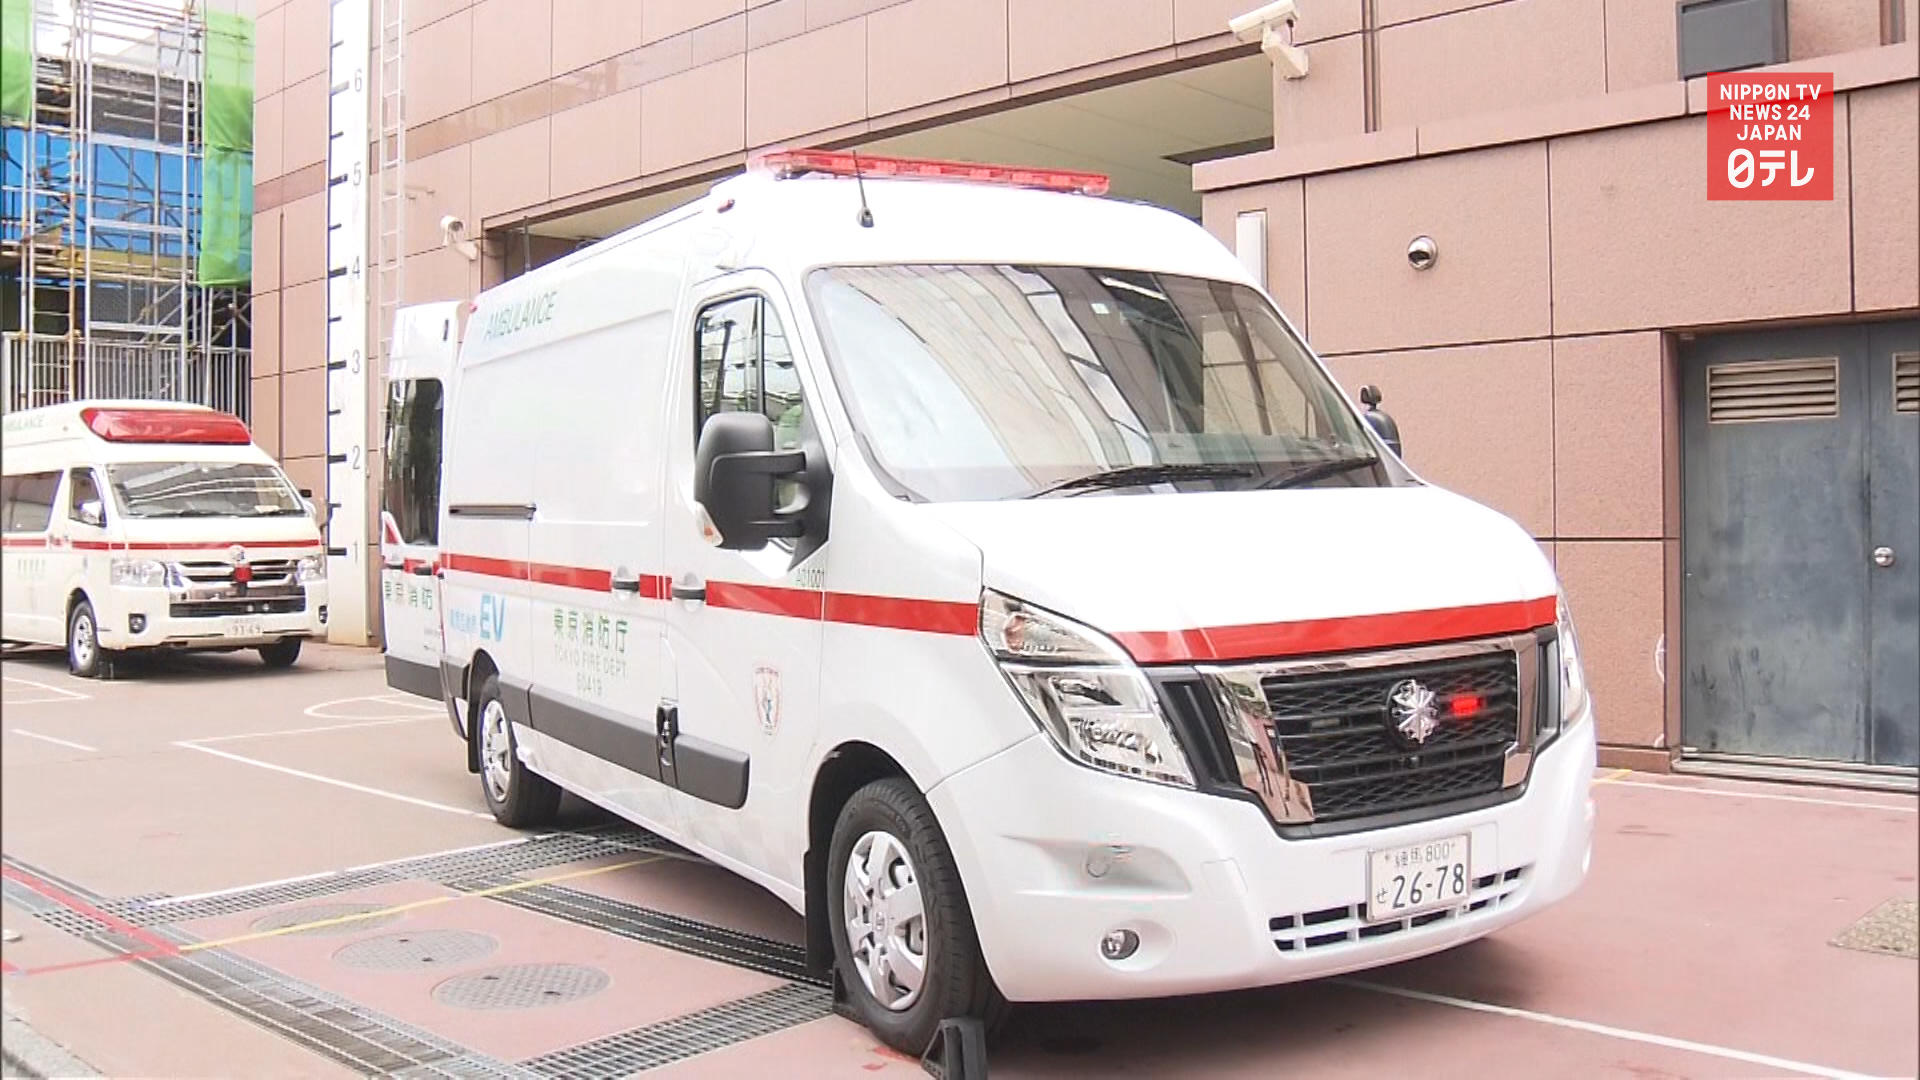 Tokyo introduces electric-powered ambulance for the first time in Japan